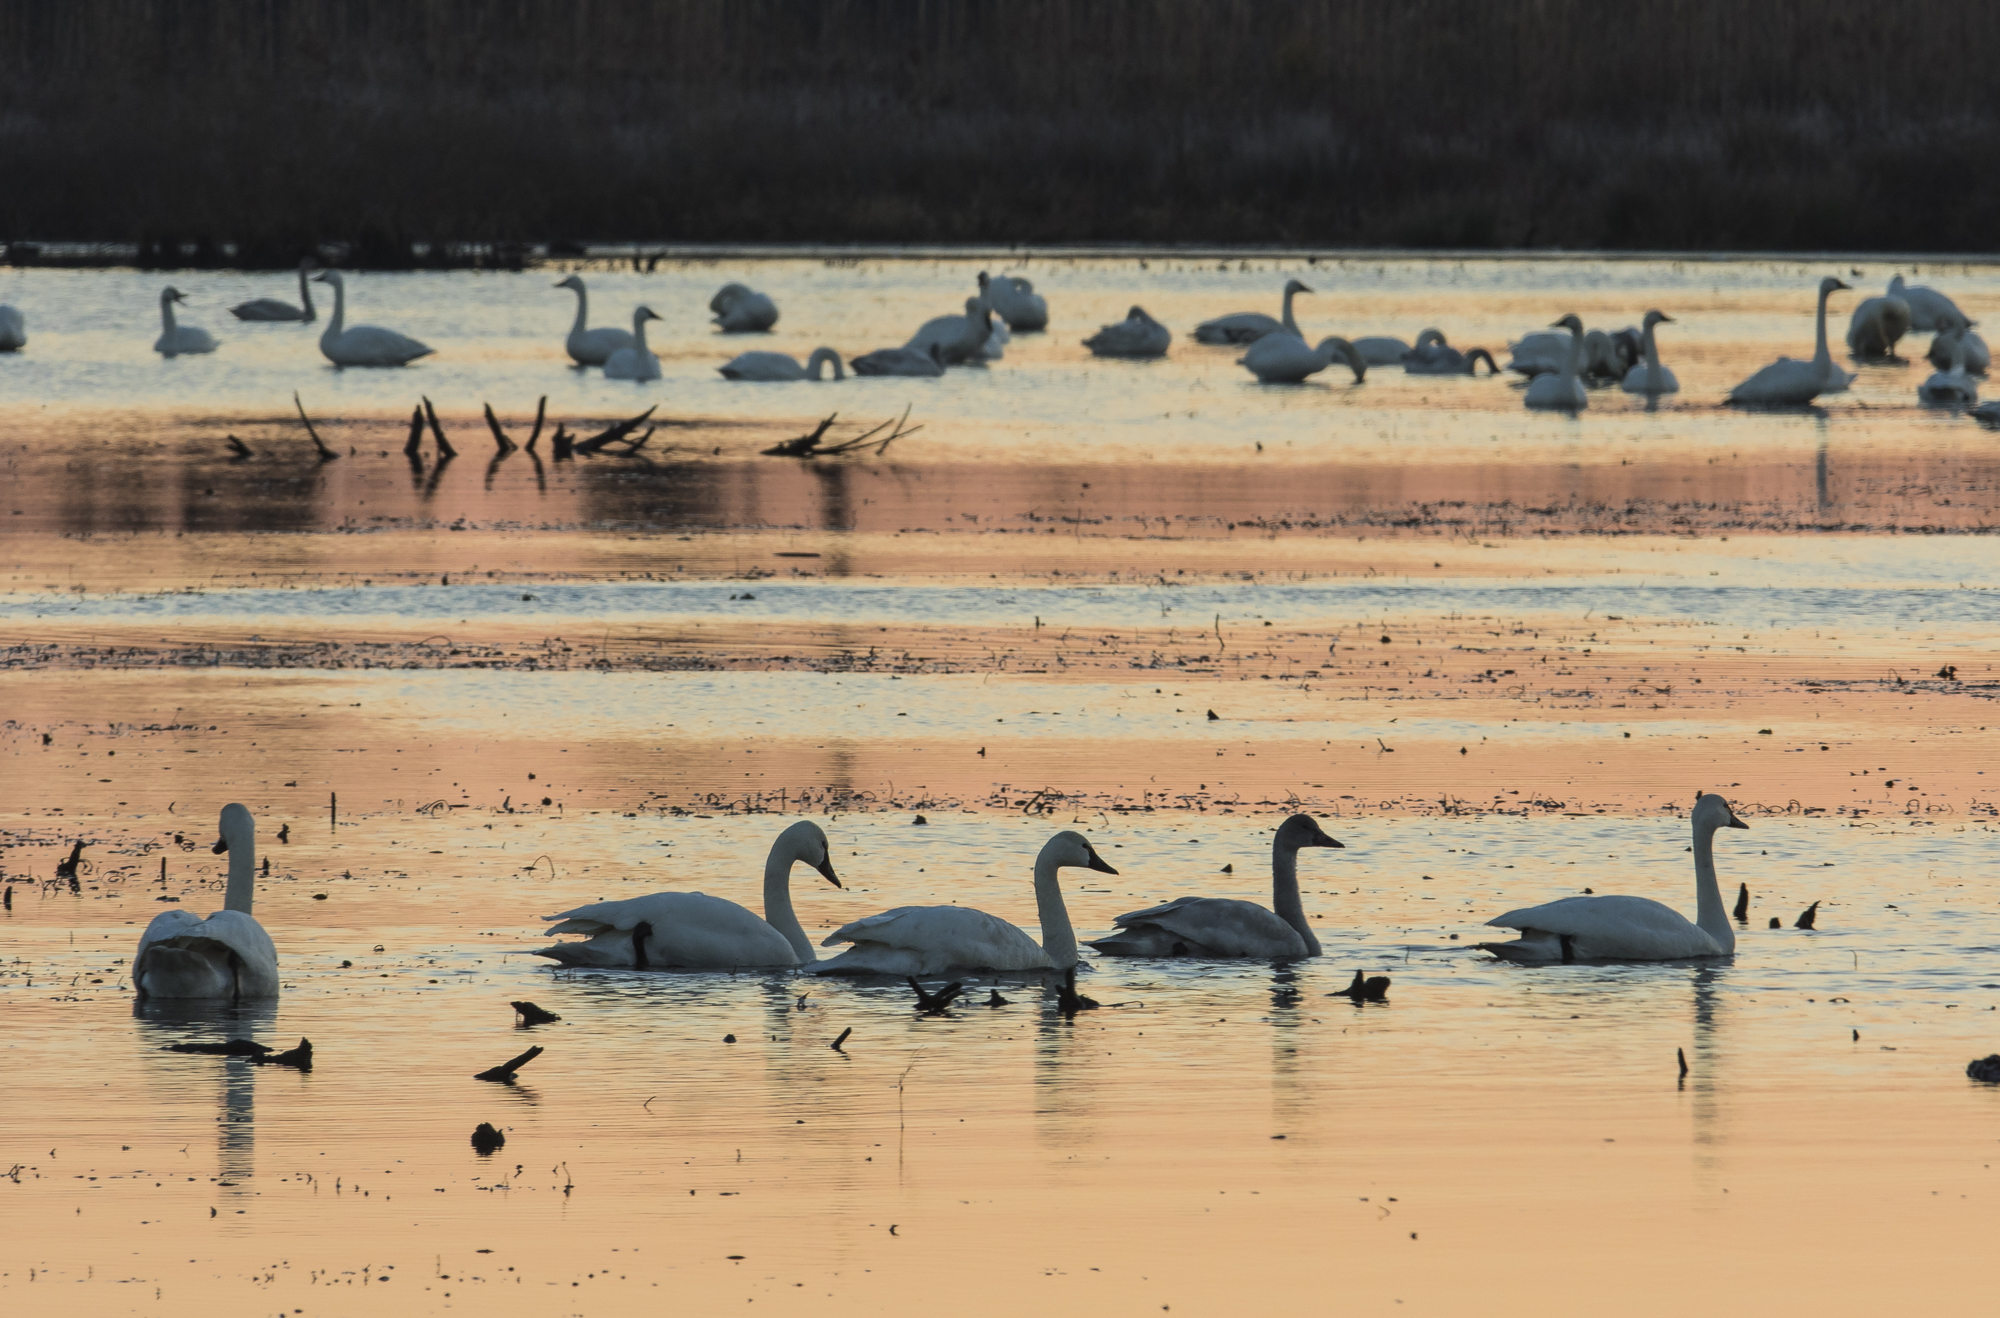 Tundra swans at sunrise